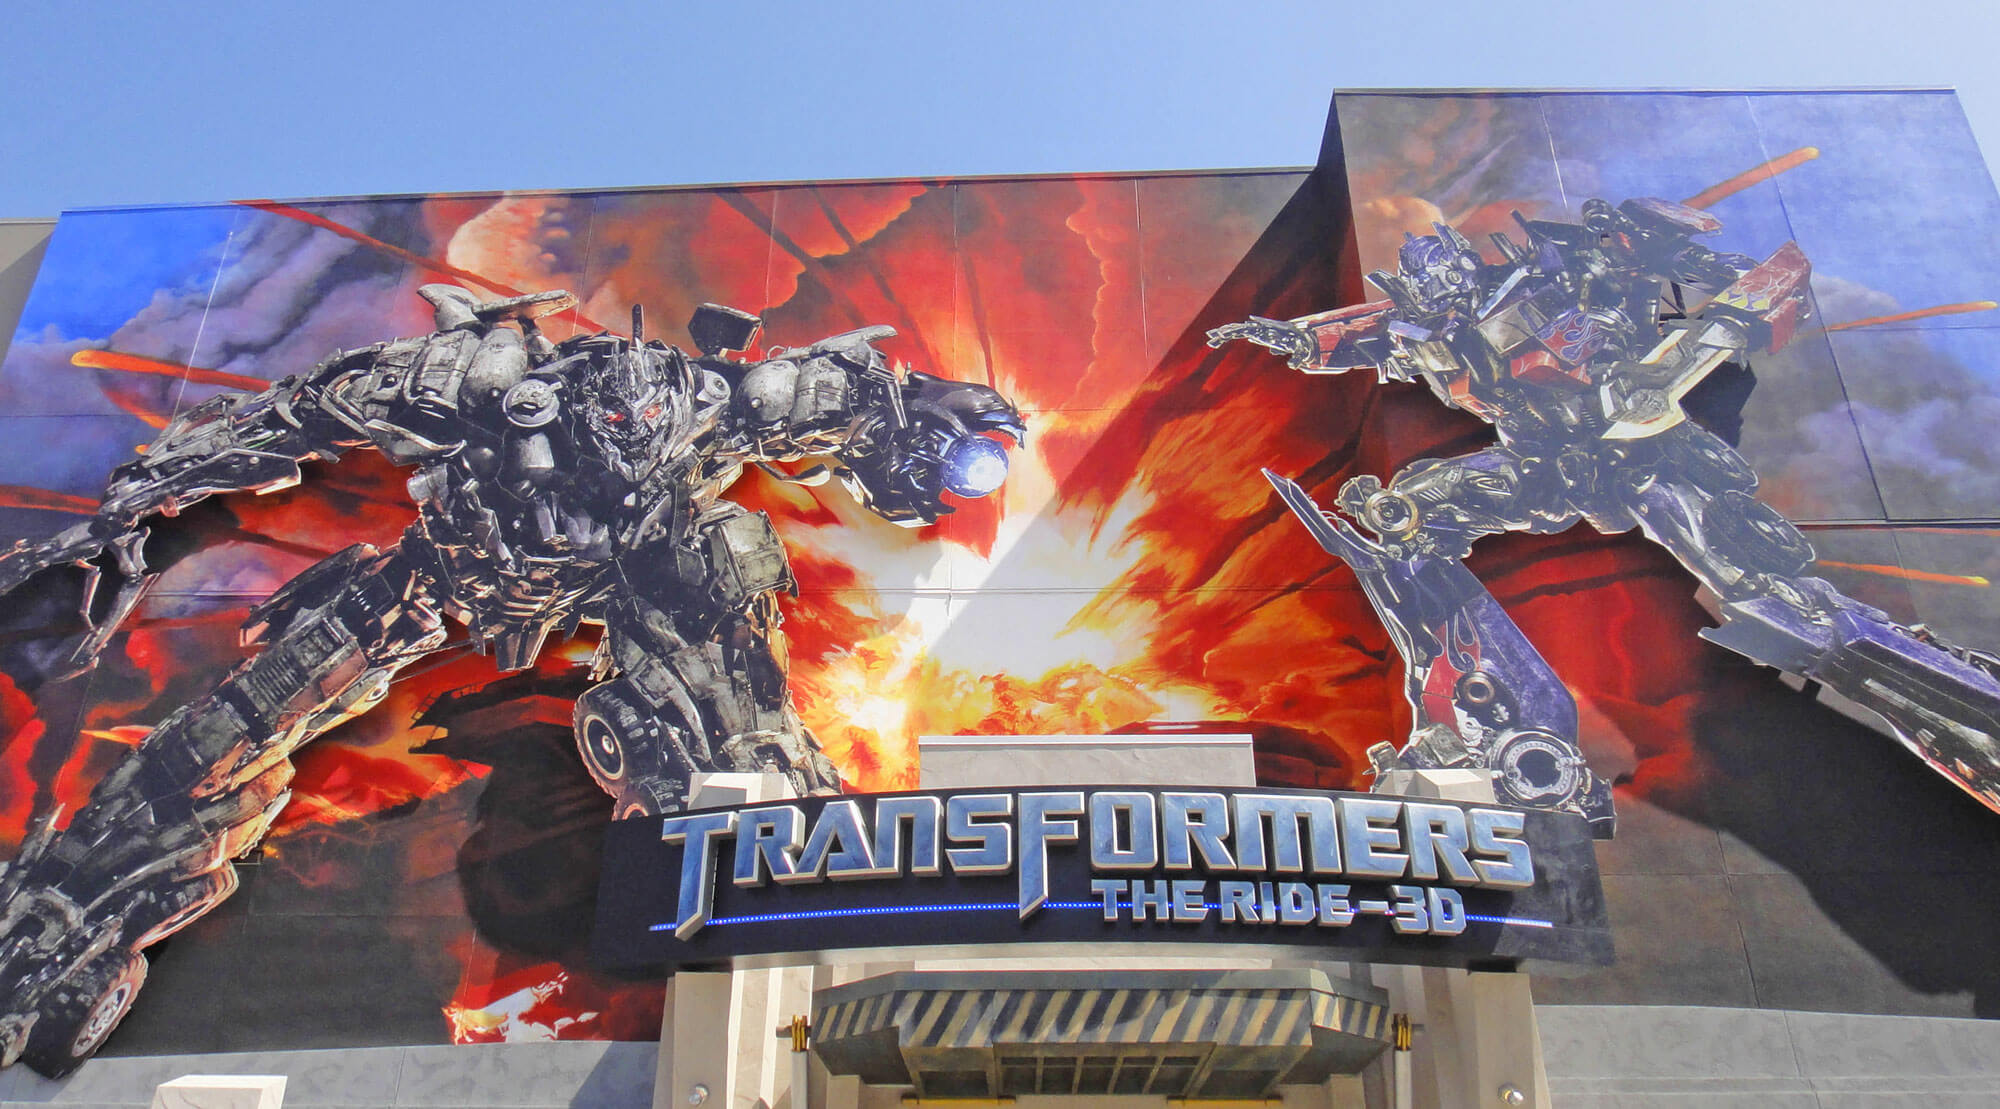 Not-to-Miss Universal Studios Hollywood Attractions and Shows - Transformers - The Ride 3D